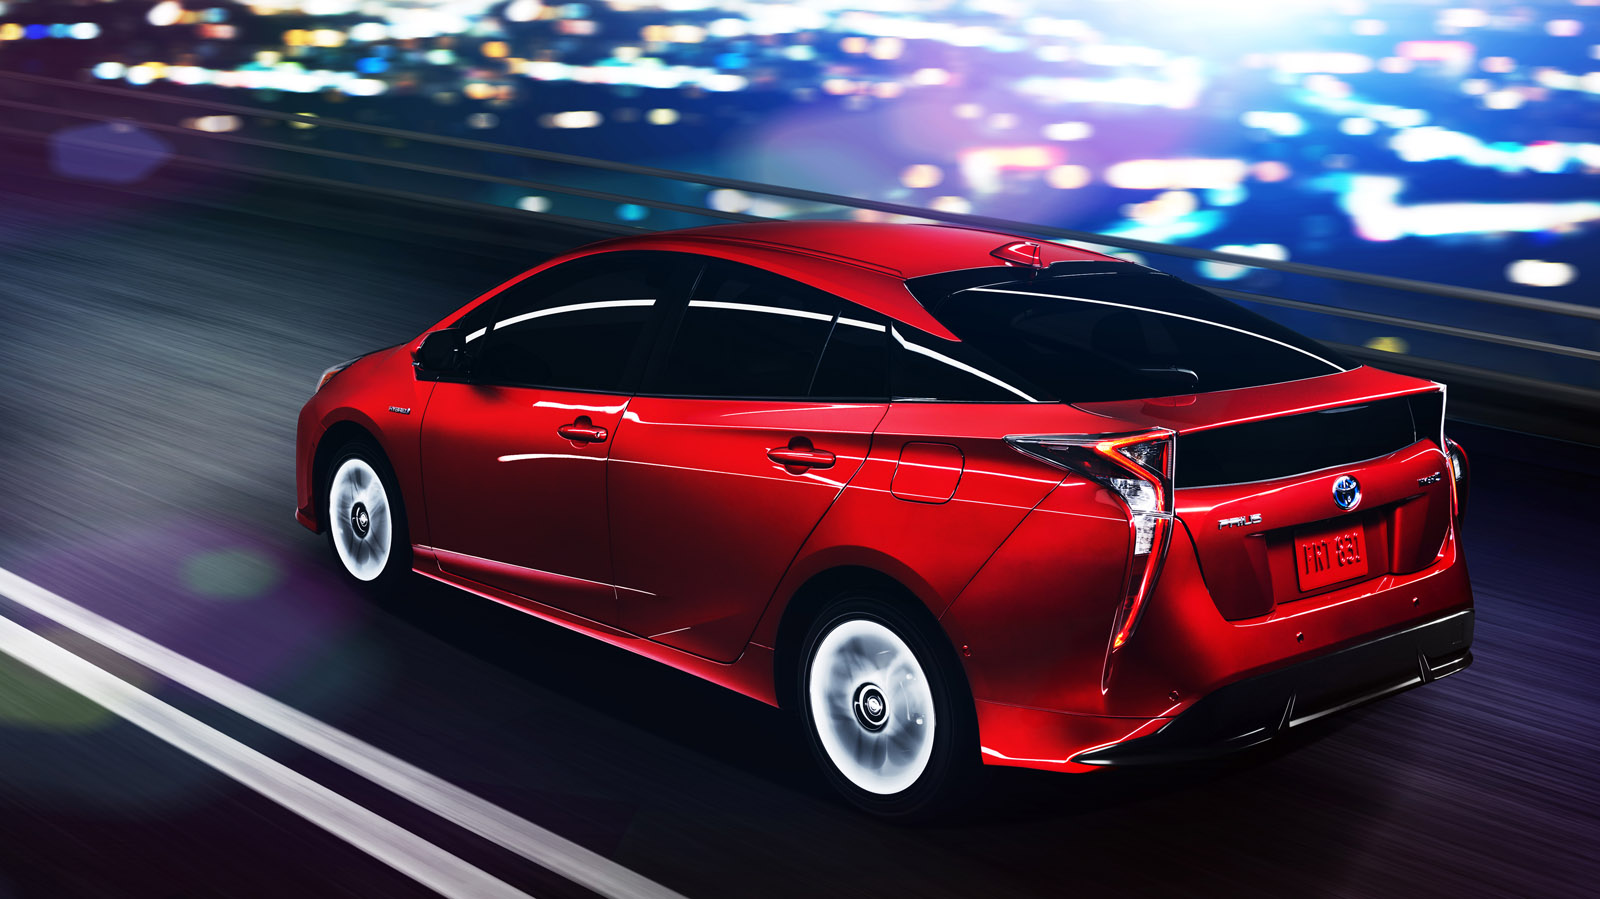 2016 toyota prius revealed 12 things you need to know news. Black Bedroom Furniture Sets. Home Design Ideas